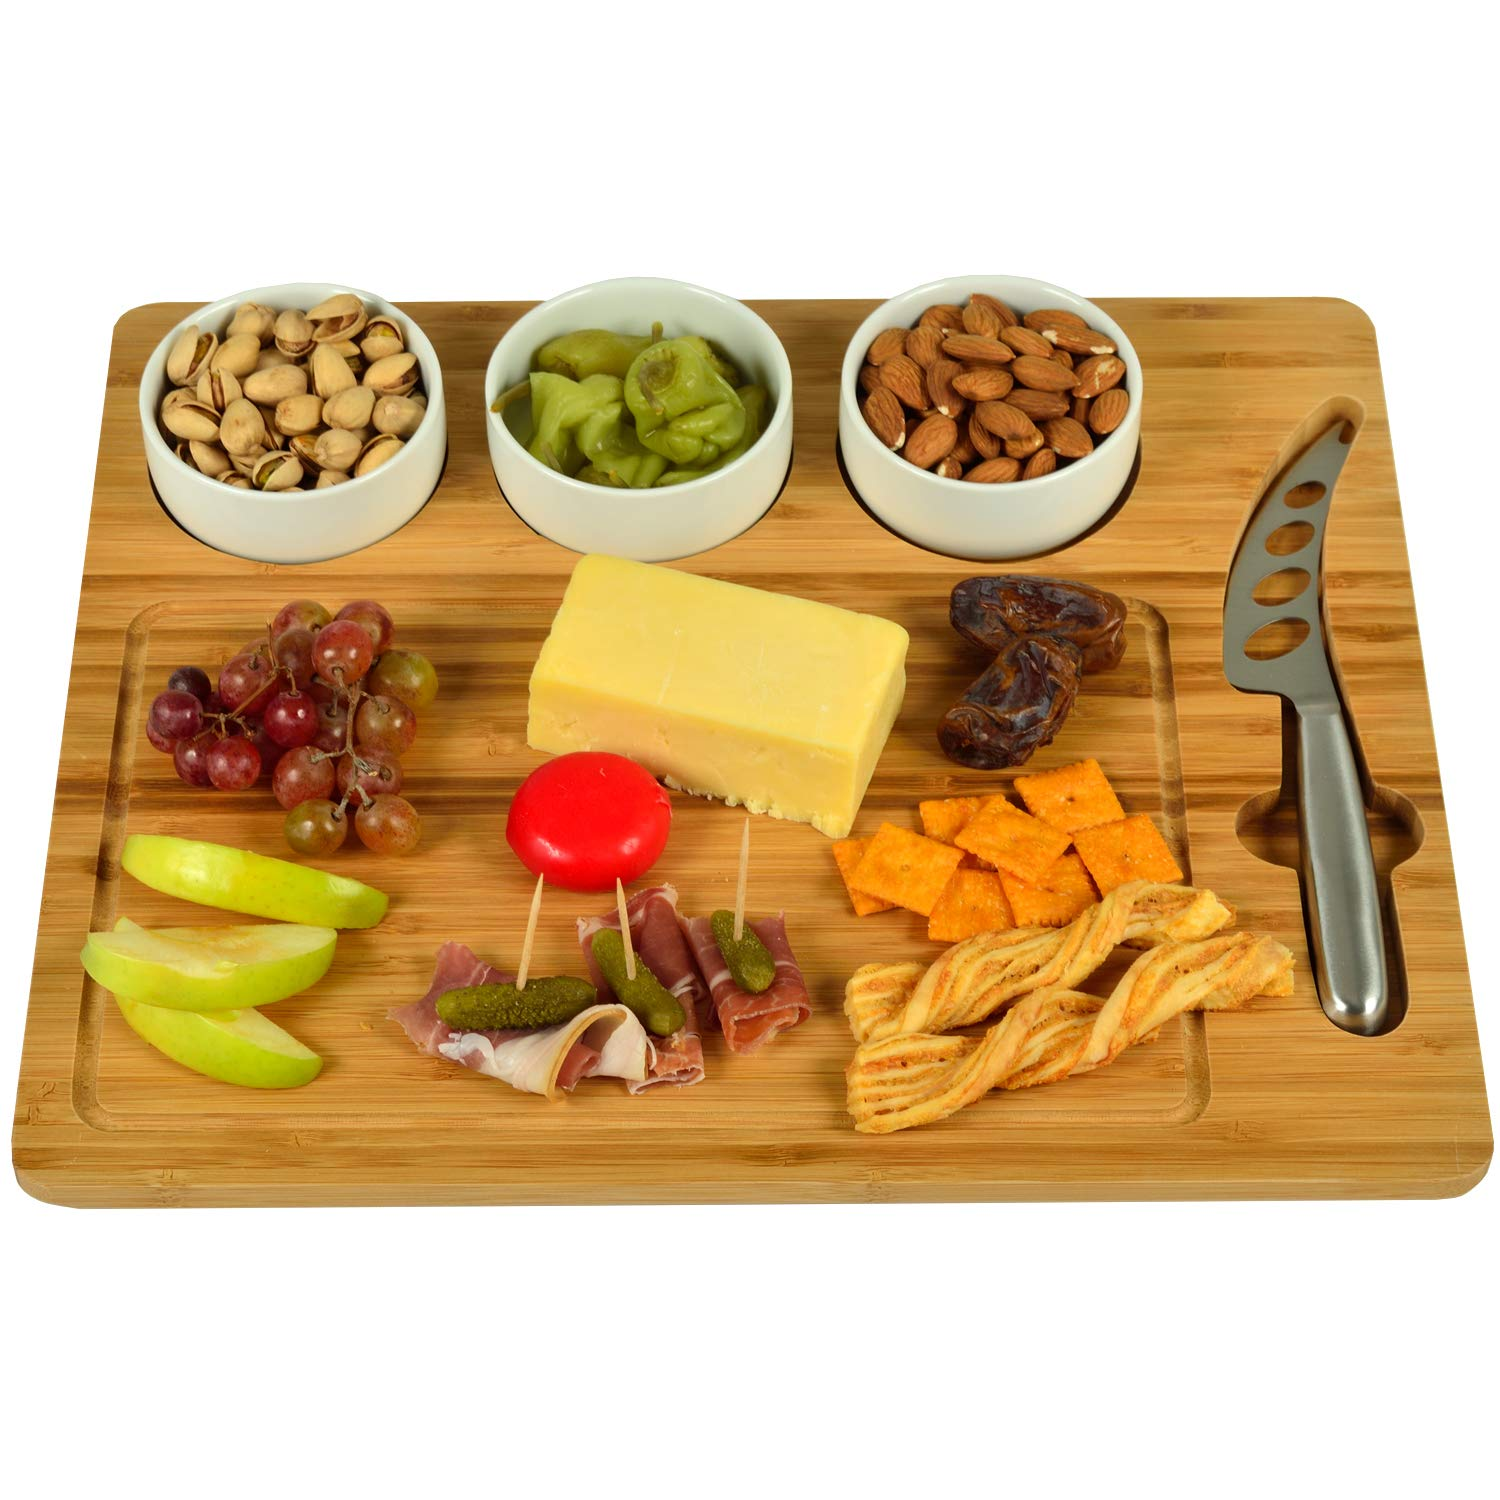 Picnic at Ascot Bamboo Charcuterie Platter with 3 Ceramic Bowls & Cheese Knife - 15'' x 13'' - Designed & Quality Checked in the USA